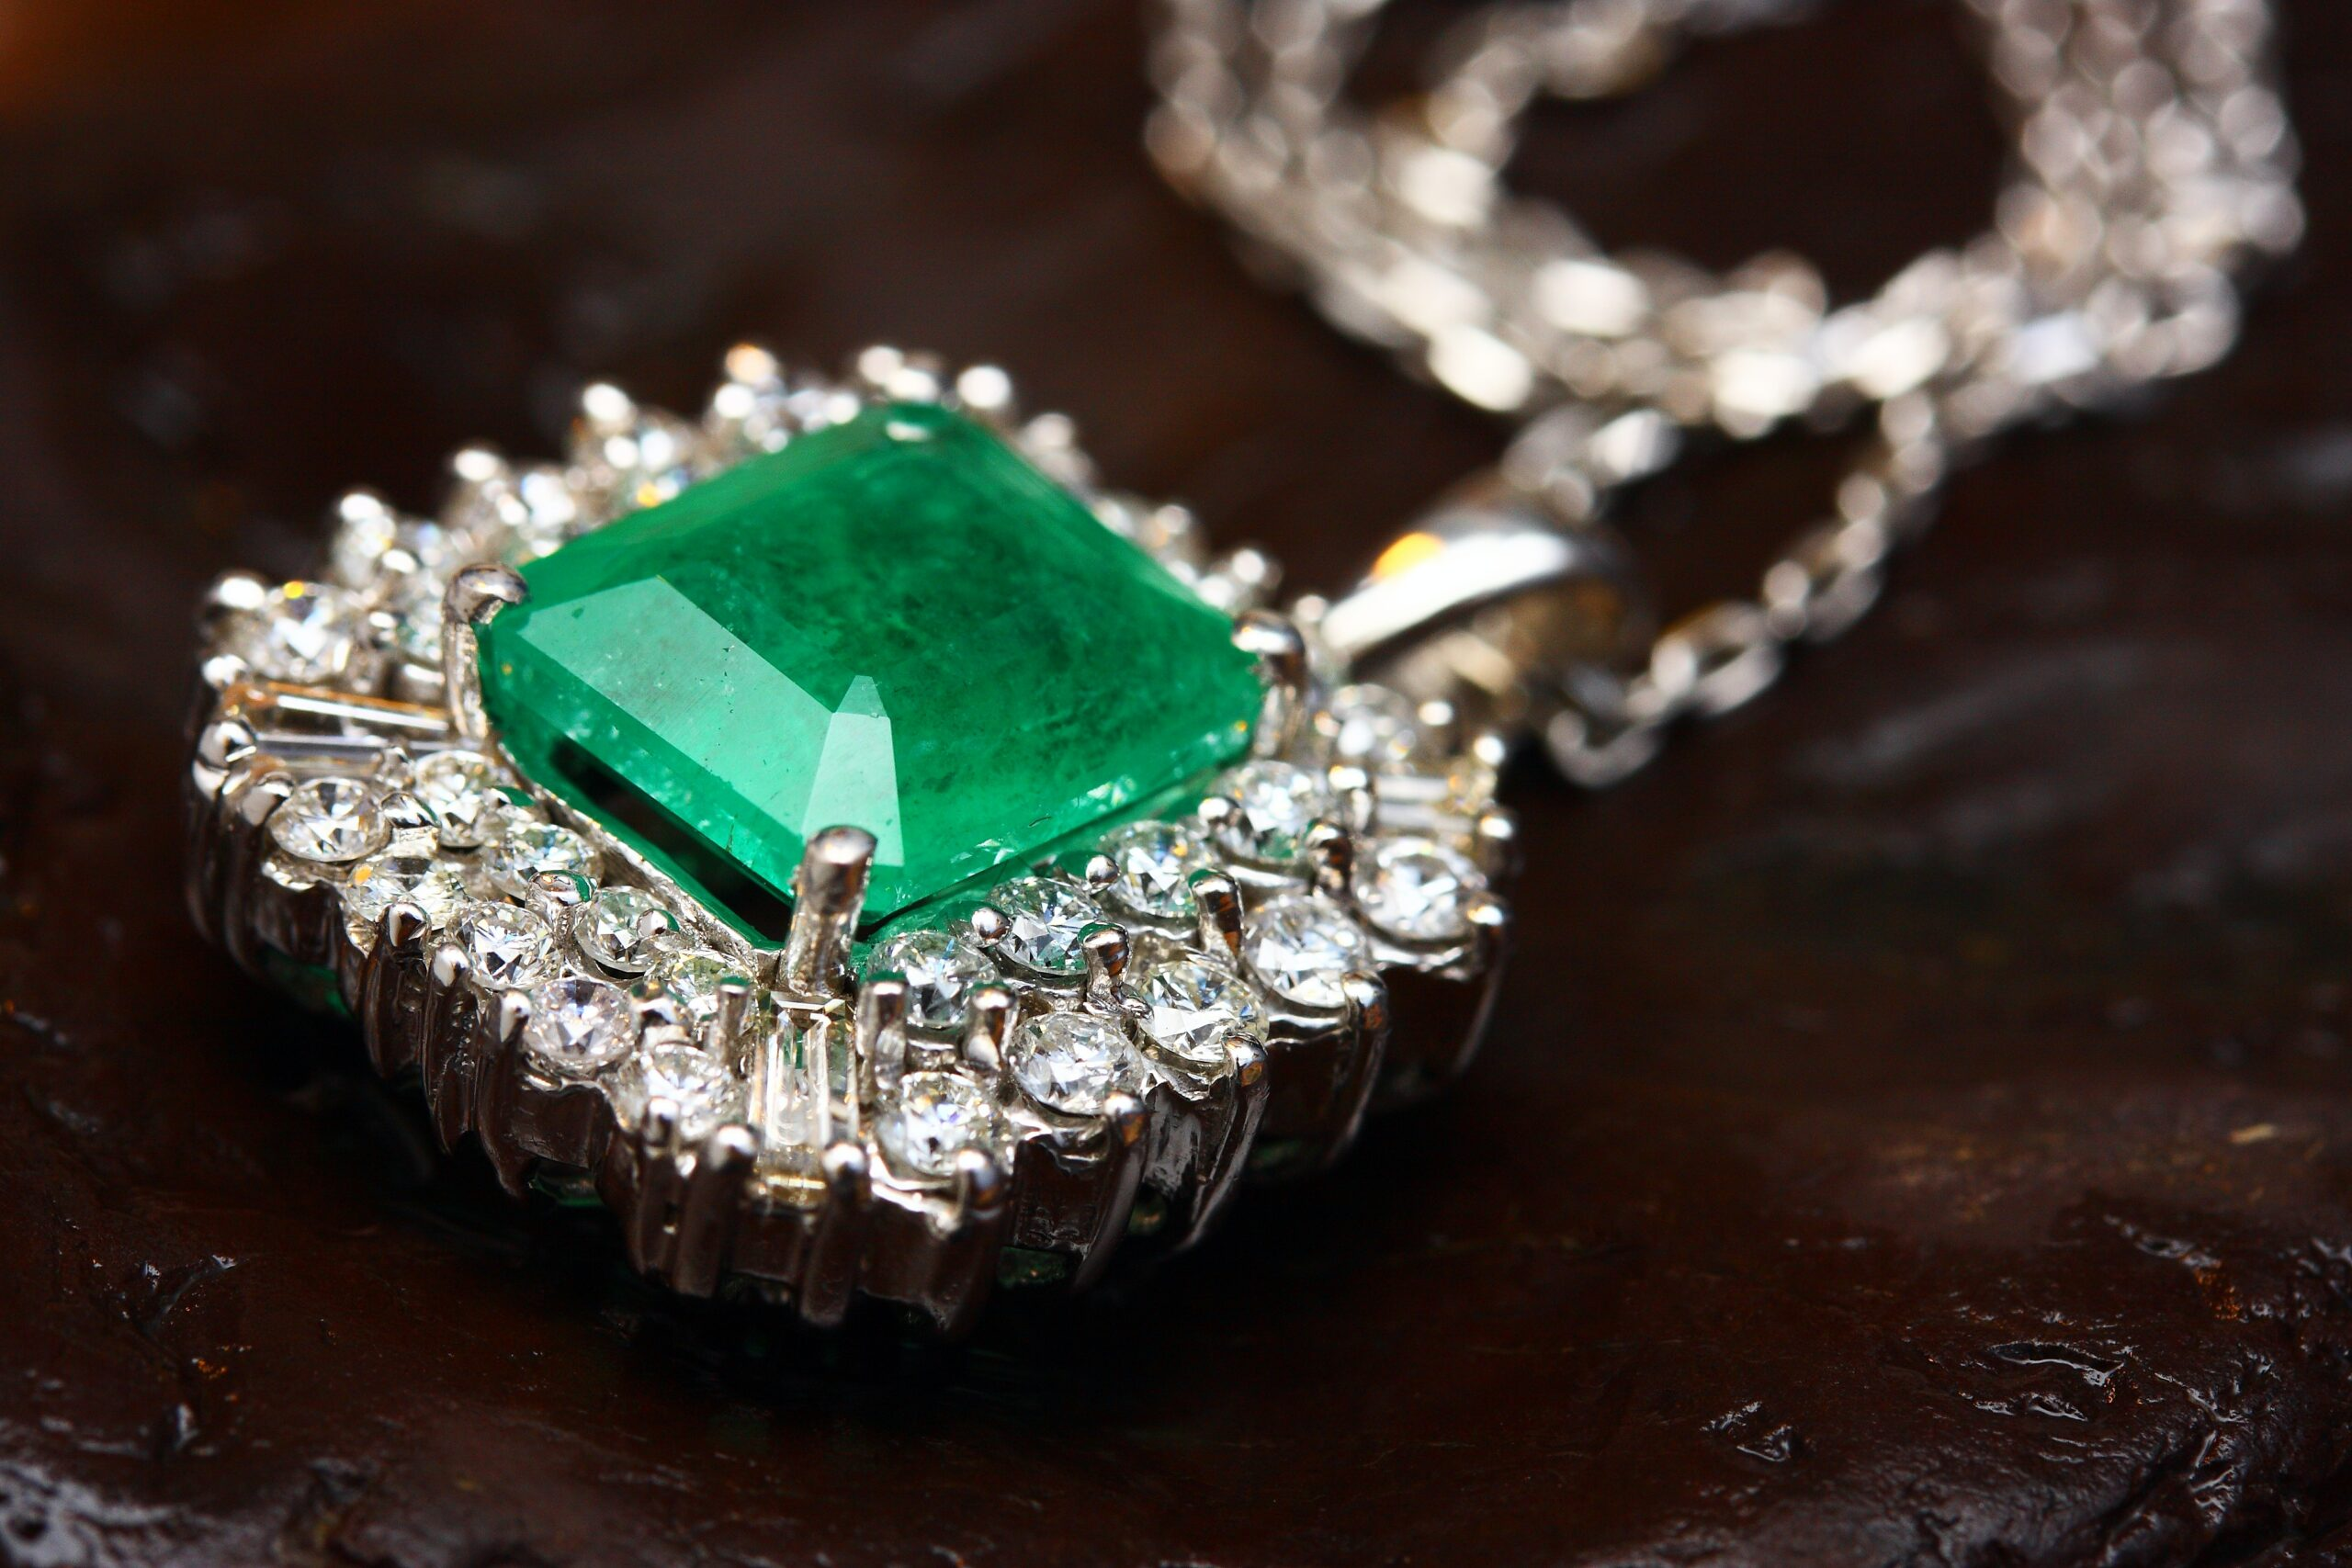 How to Make a Family Heirloom Your Own